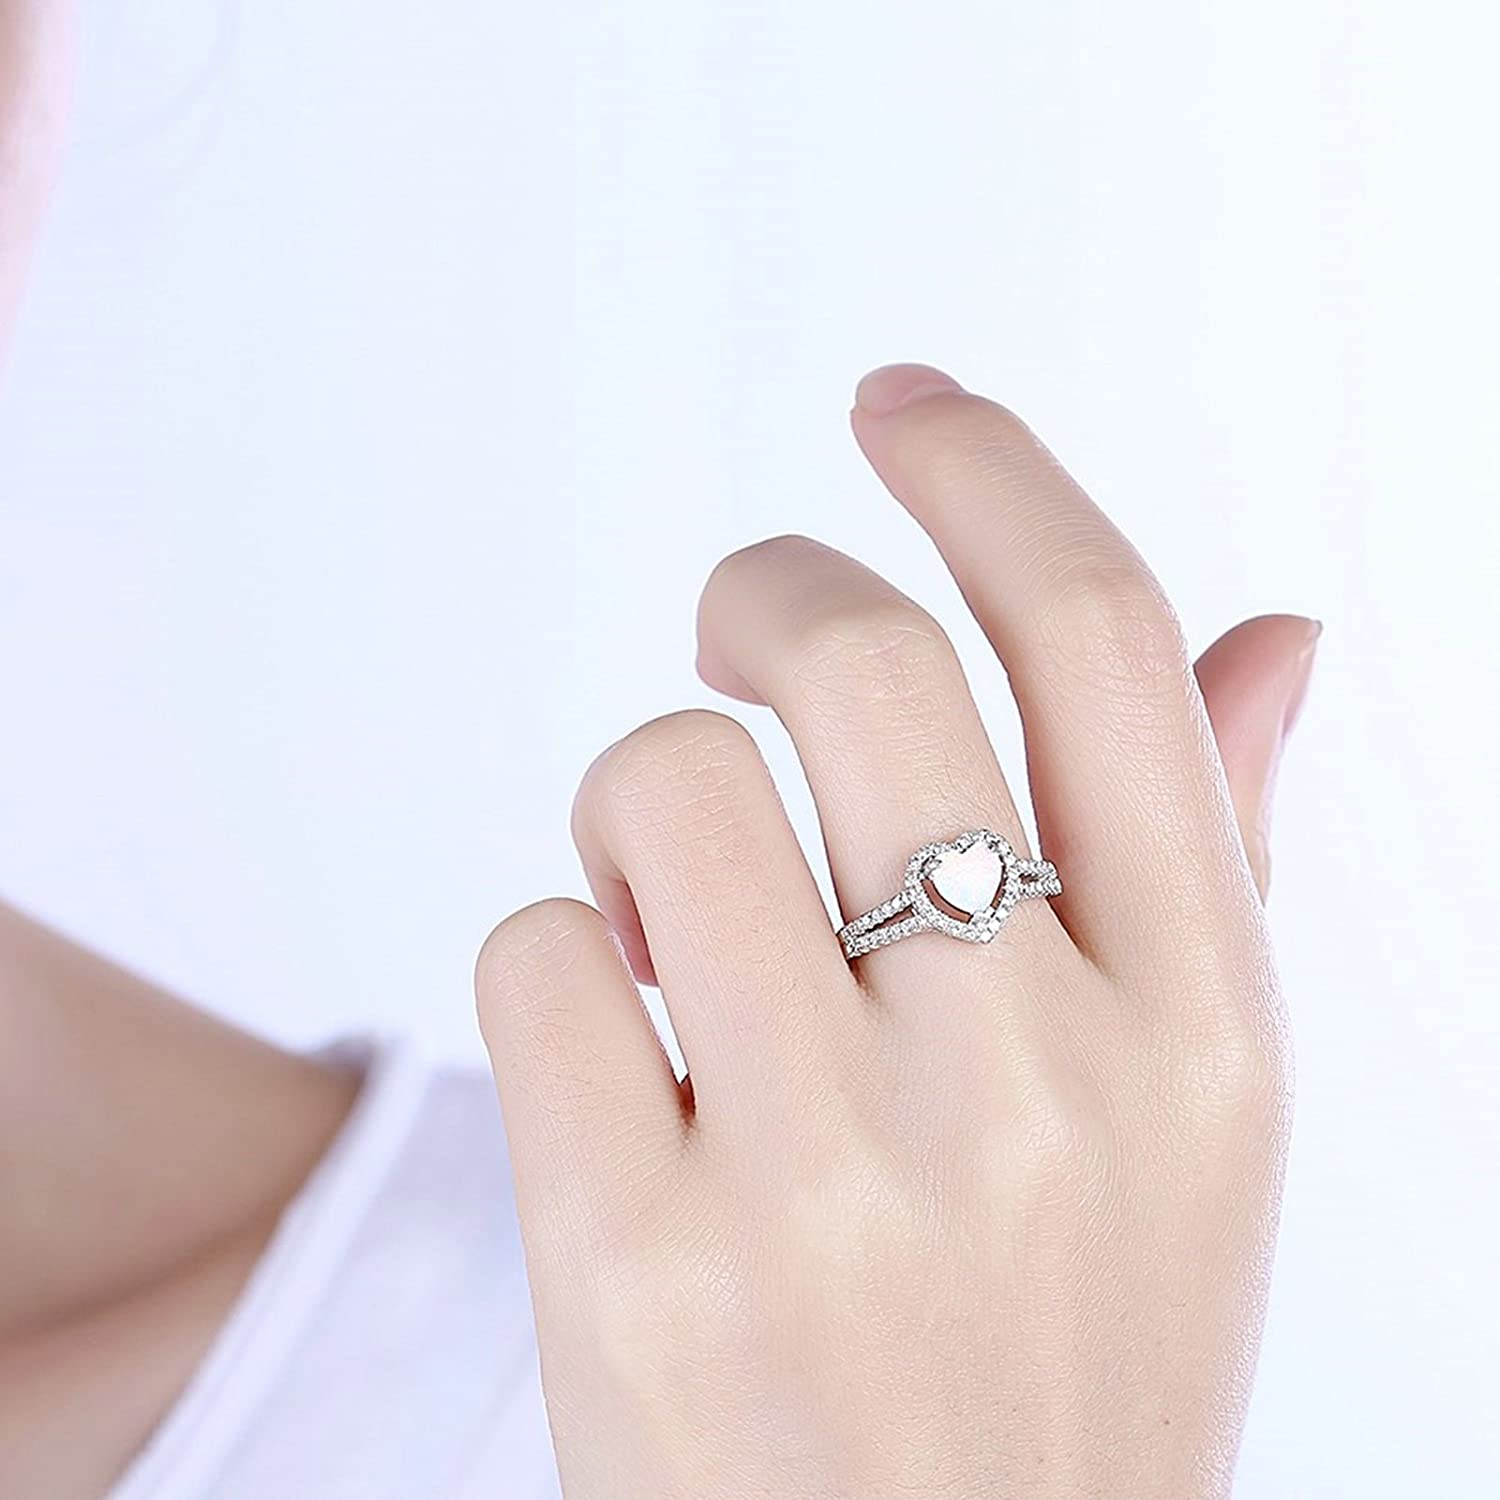 MoAndy Jewelry Silver Plated Ring for Wedding Bridal Women Heart Gem Stone